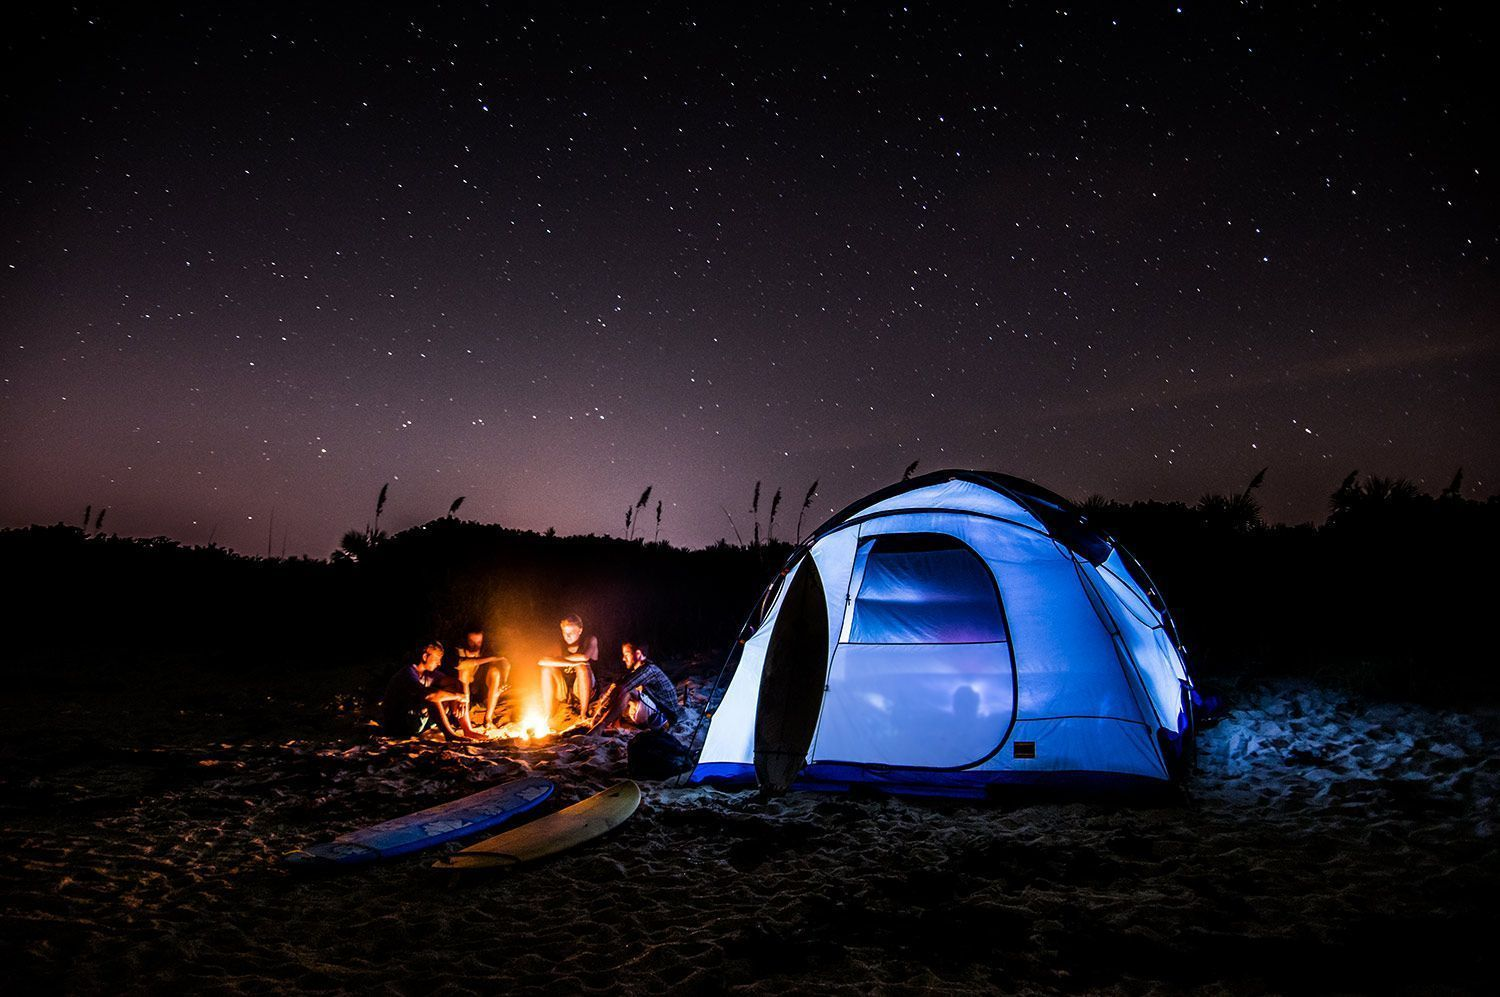 Spend Spring Break Camping At the Beach